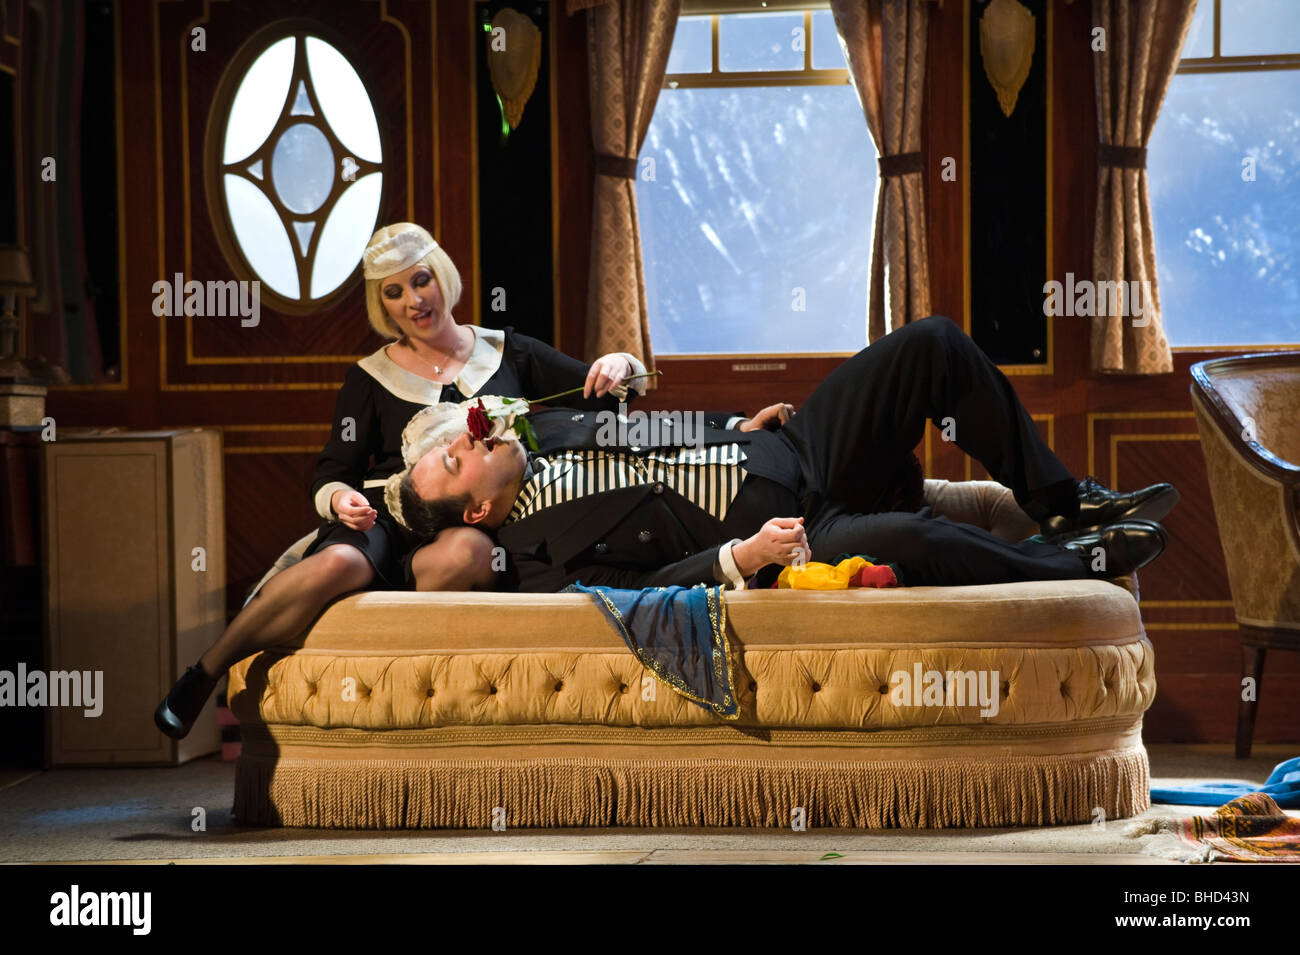 welsh-tenor-wynne-evans-as-pedrillo-and-claire-ormshaw-as-blonde-in-BHD43N.jpg